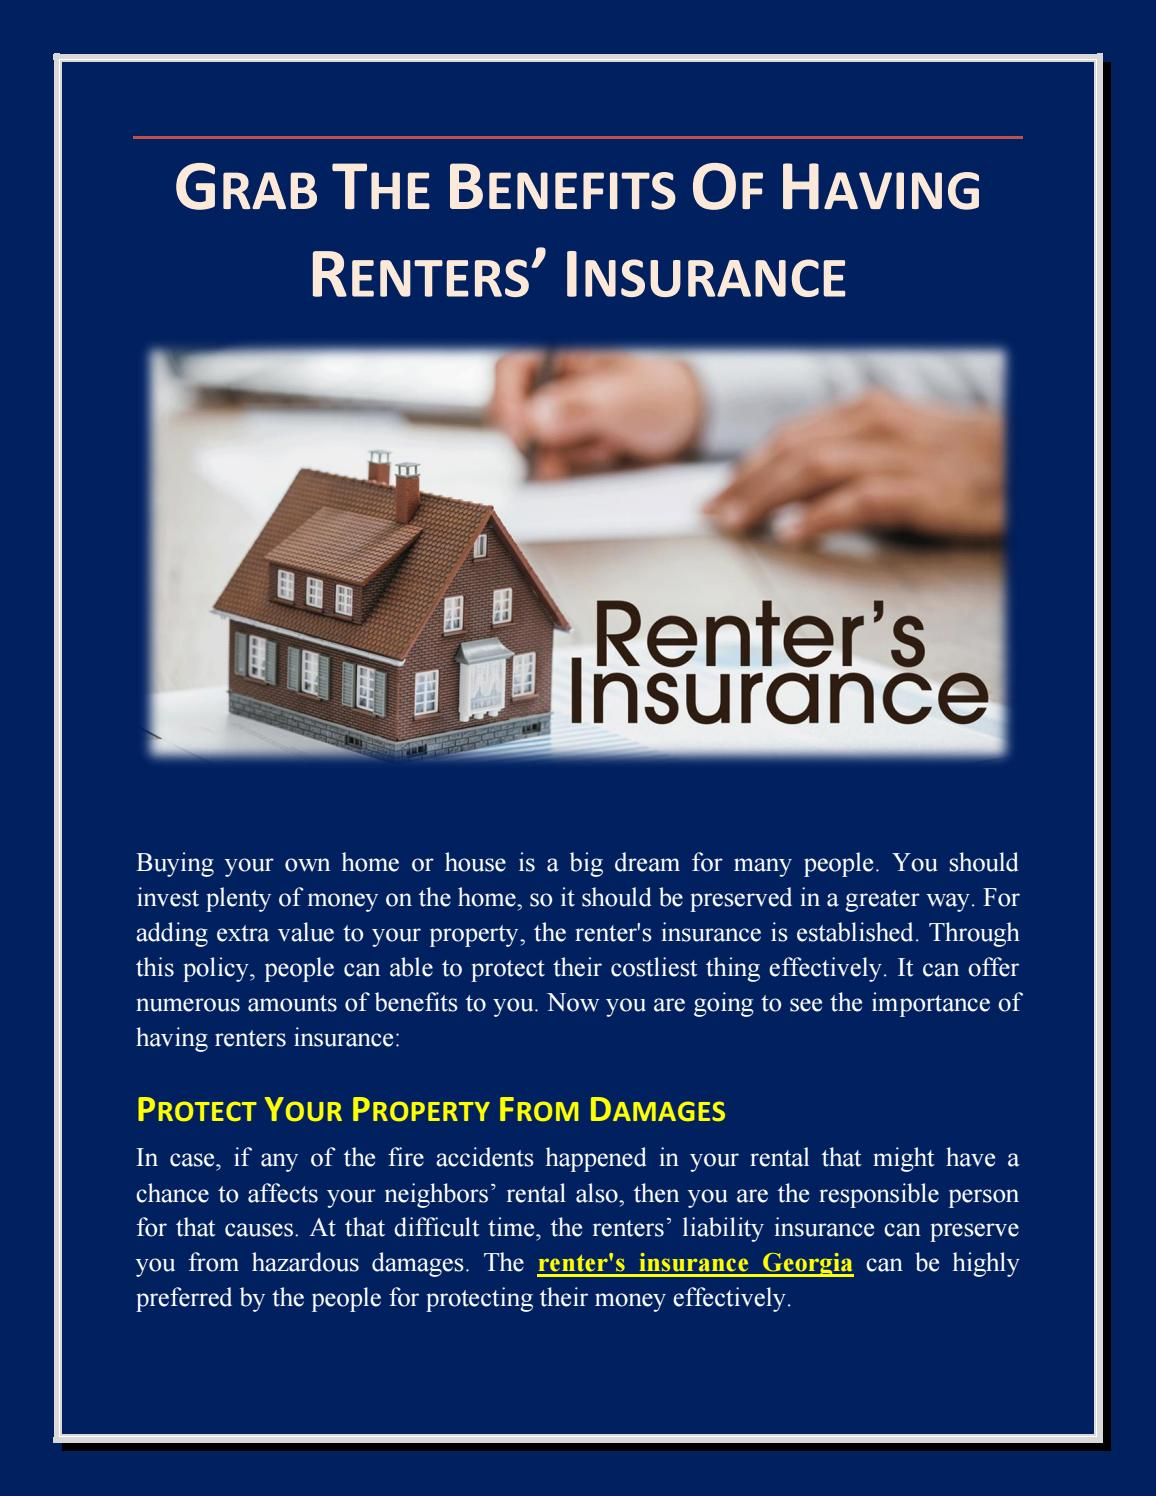 Home Renters Insurance >> Grab The Benefits Of Having Renters Insurance By Mark Will